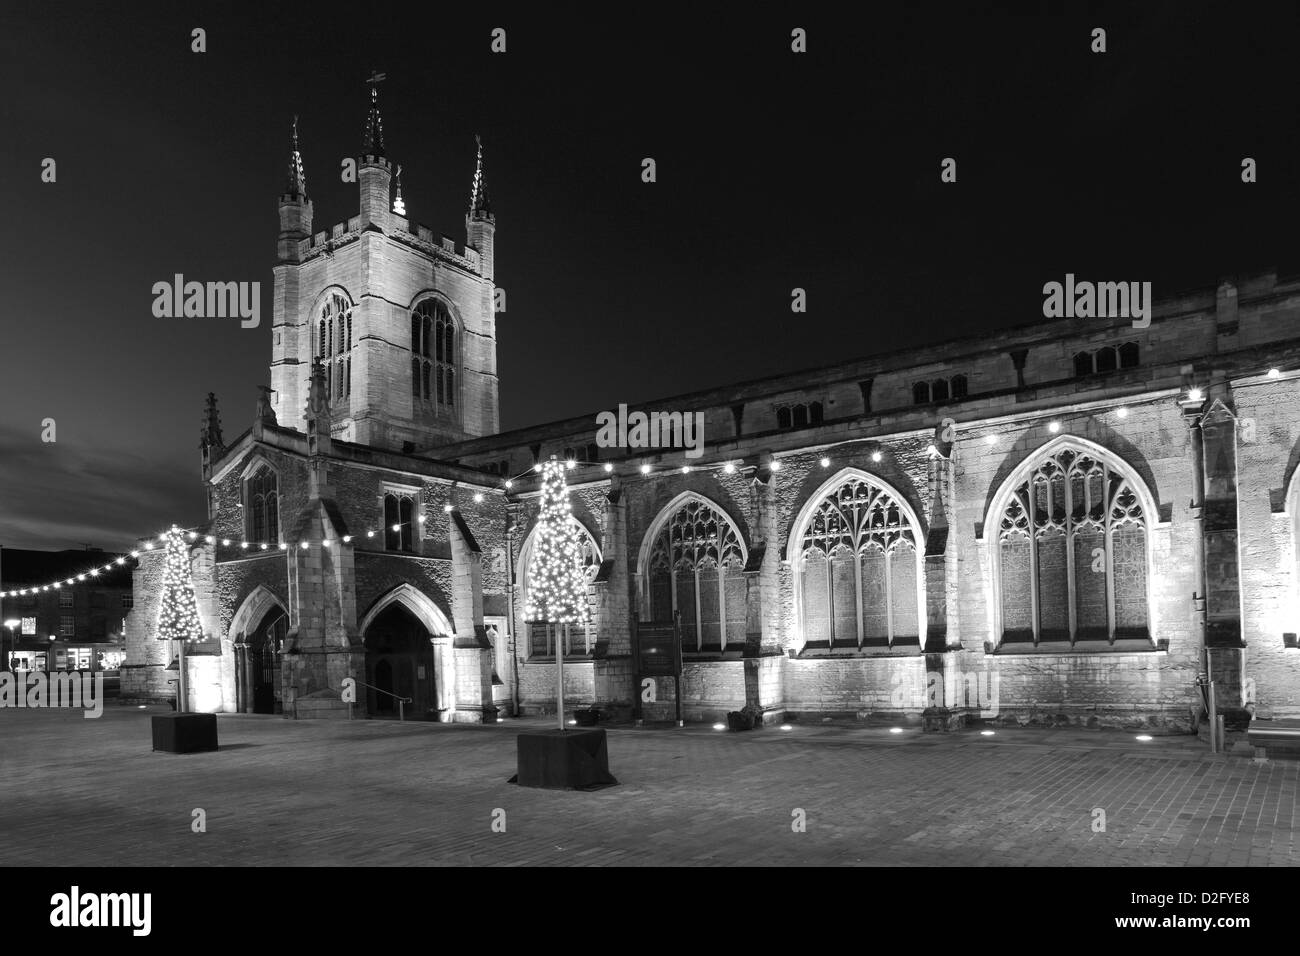 Christmas lights decorations over St Johns church, Cathedral Square, Peterborough City, Cambridgeshire, England, Stock Photo